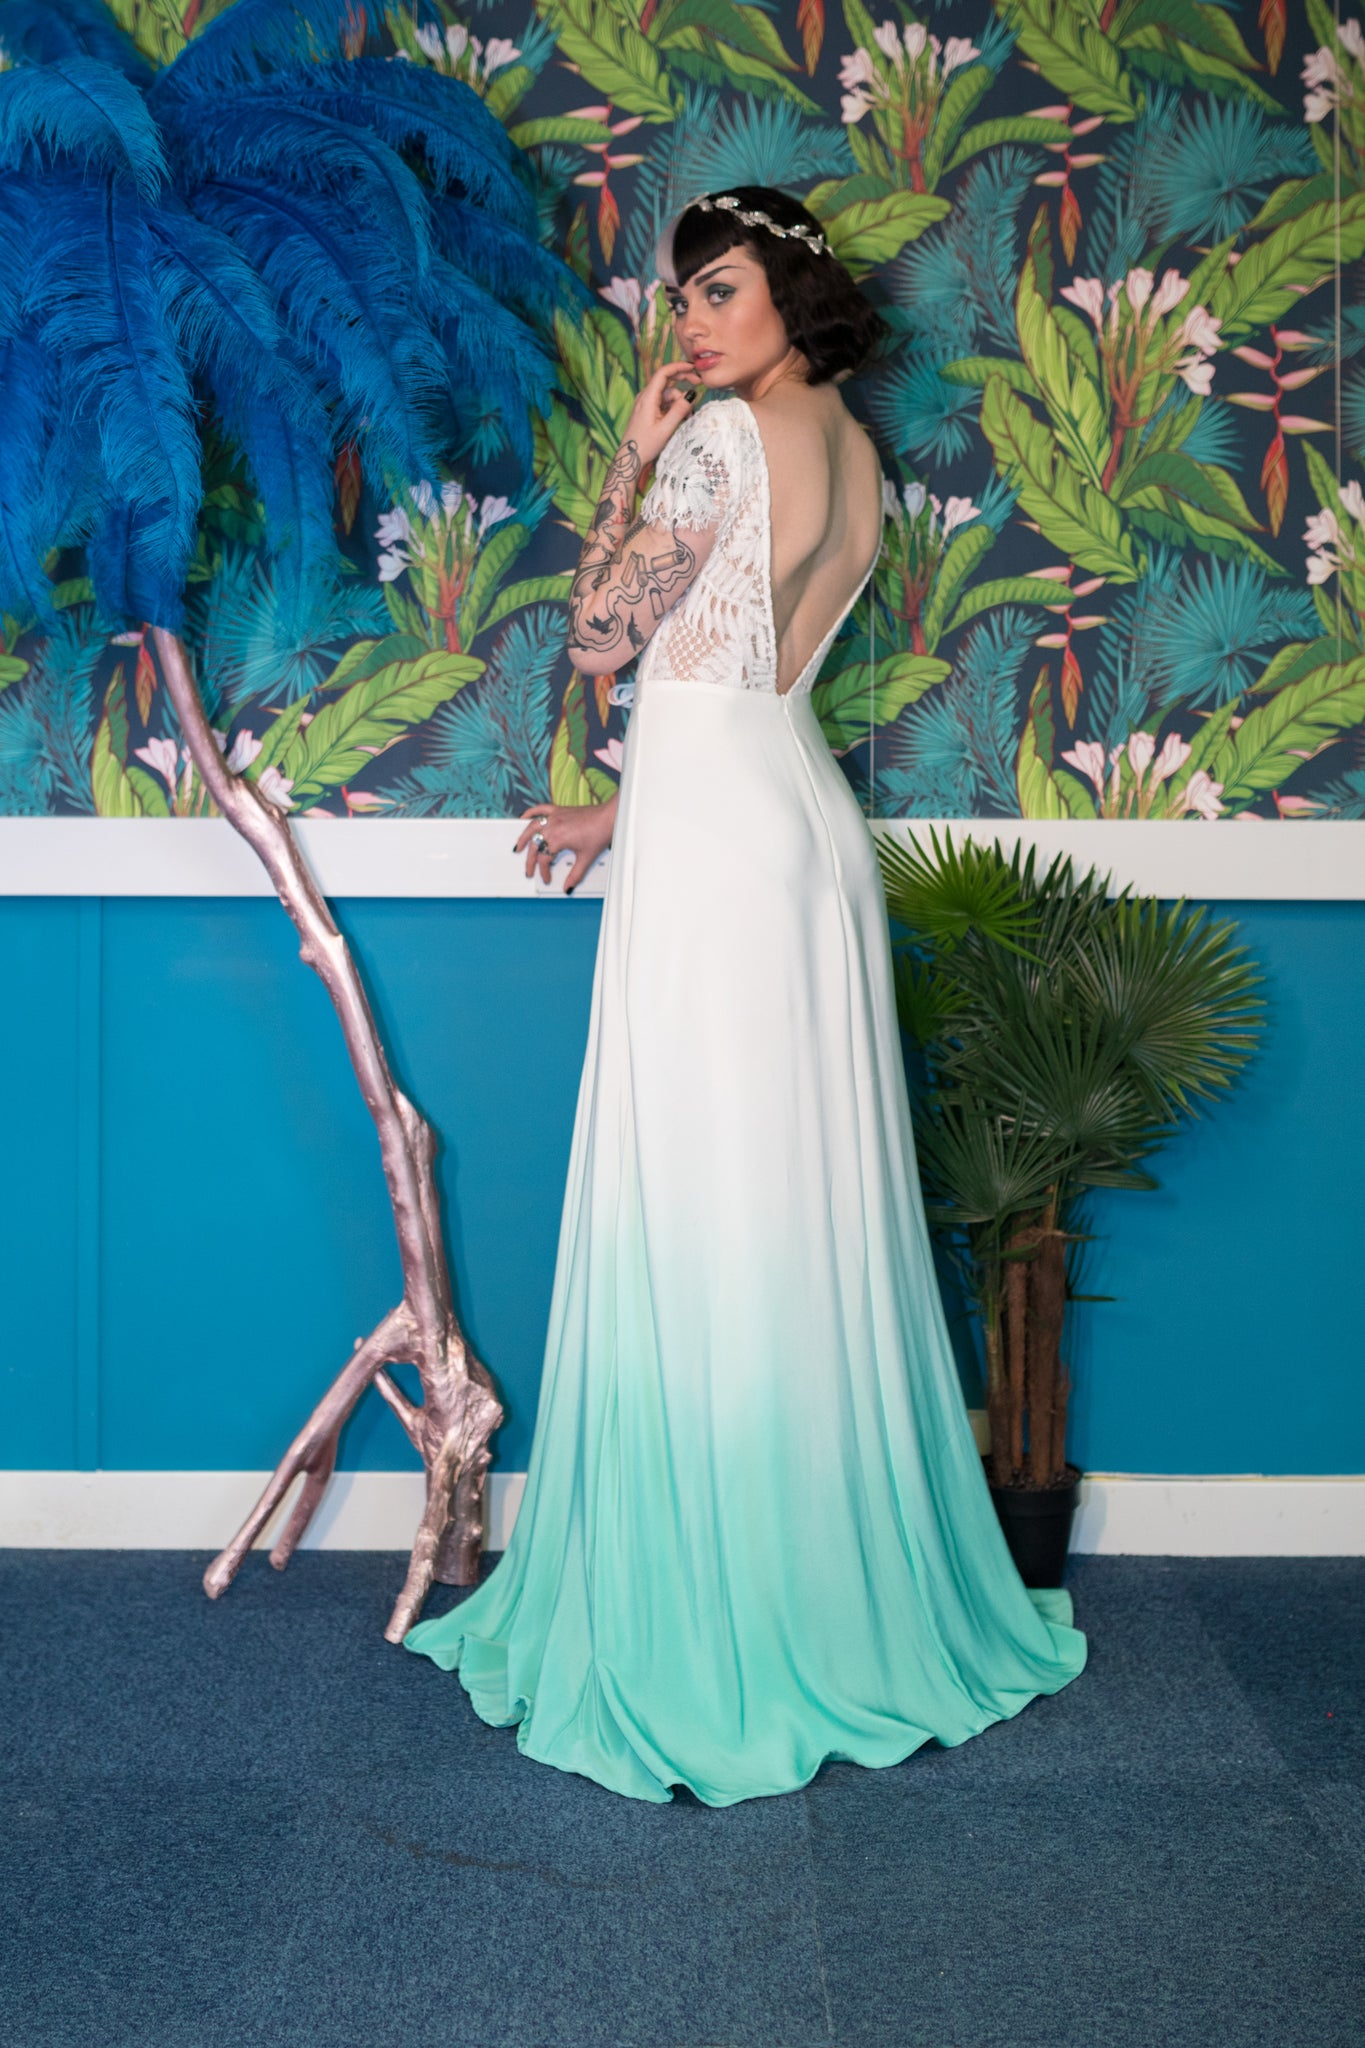 Emerald dip dye silk wedding dress